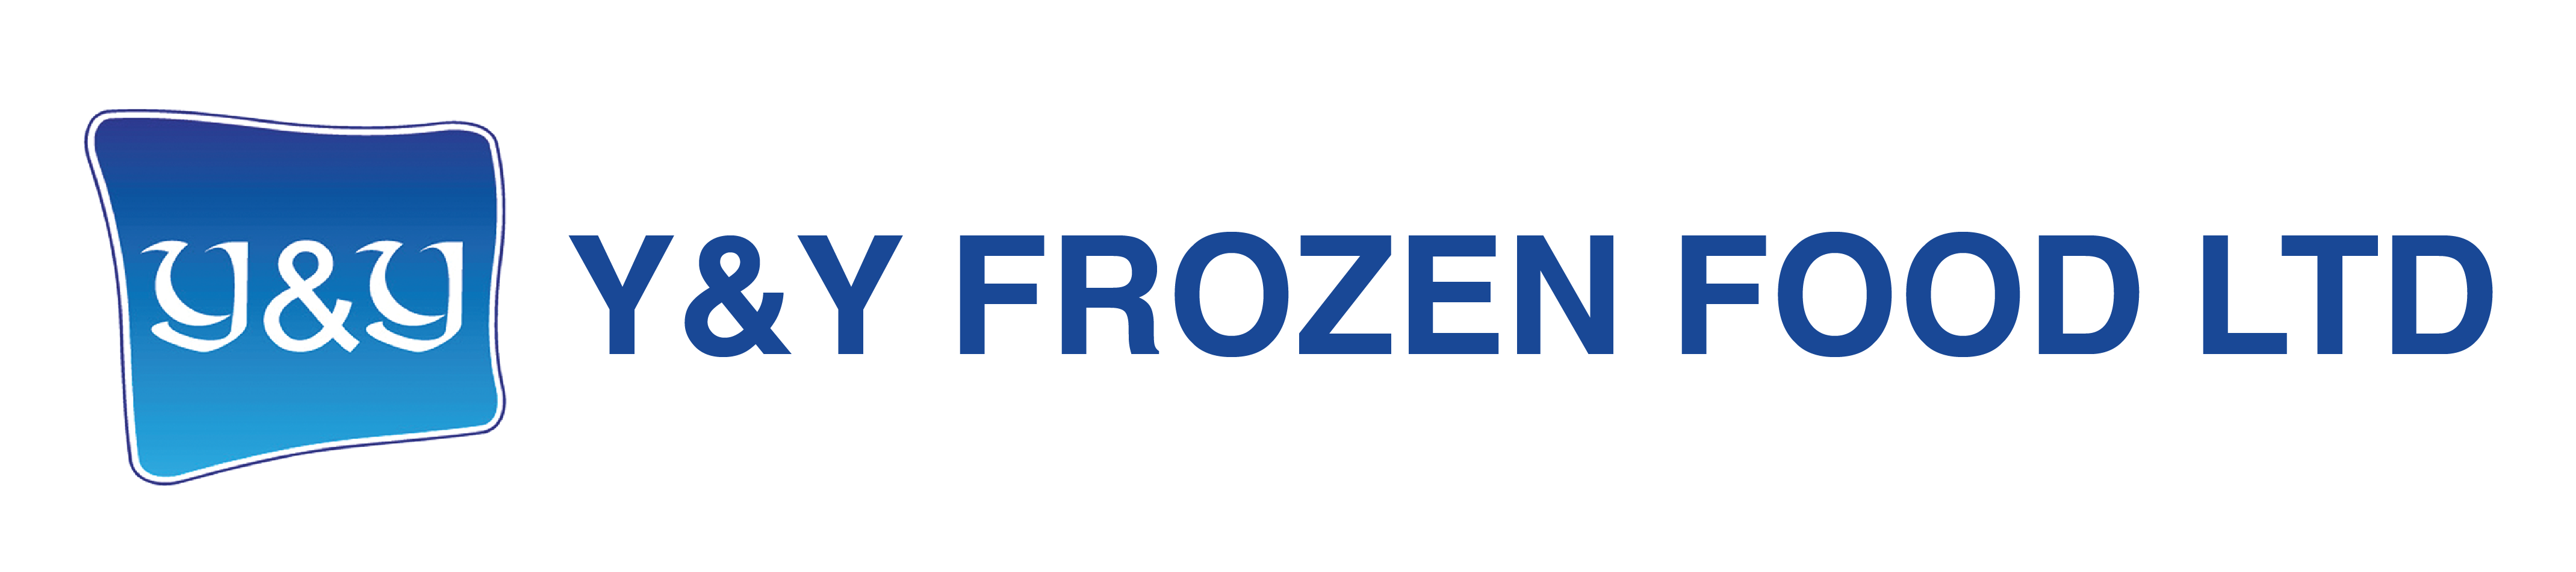 Y&Y FROZEN FOOD LIMITED